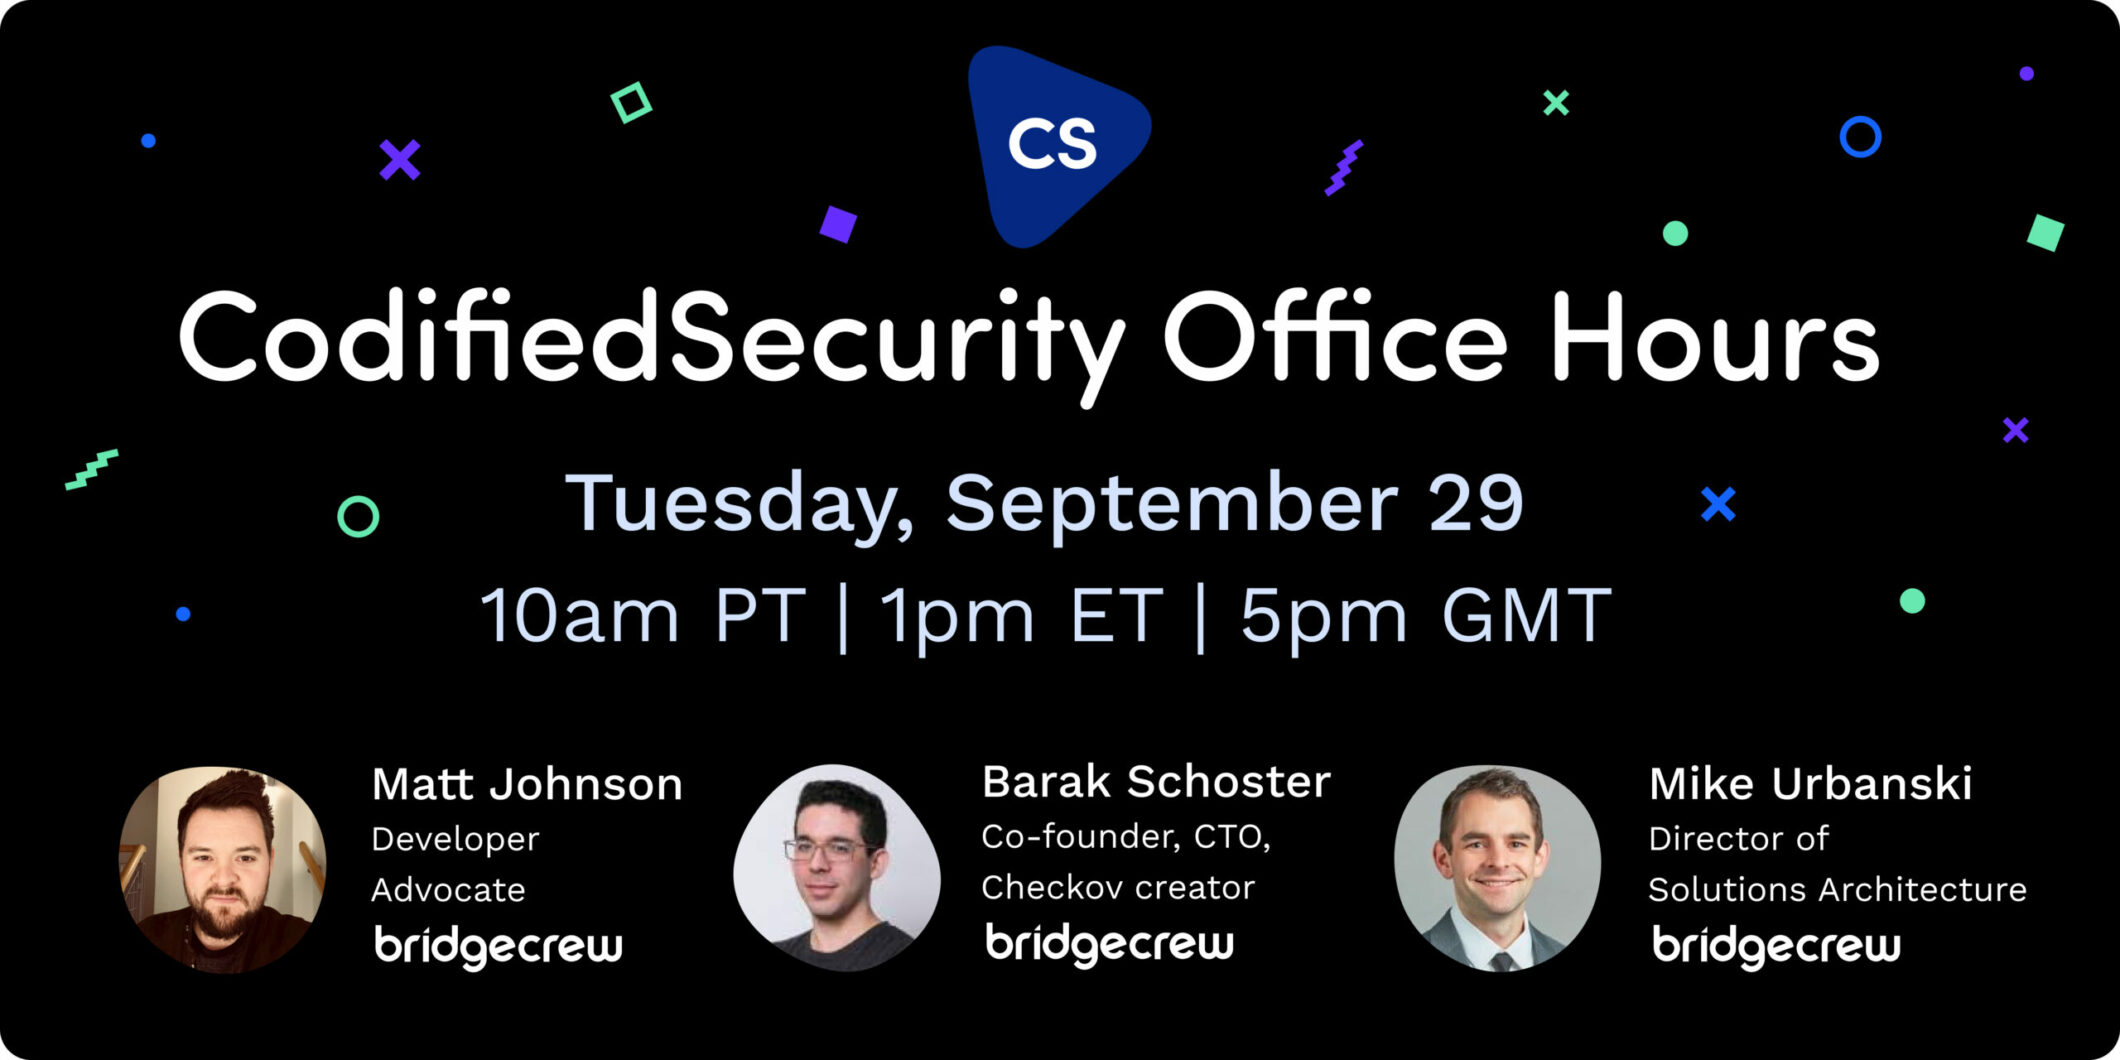 Join us for the first Codified Security Office Hours